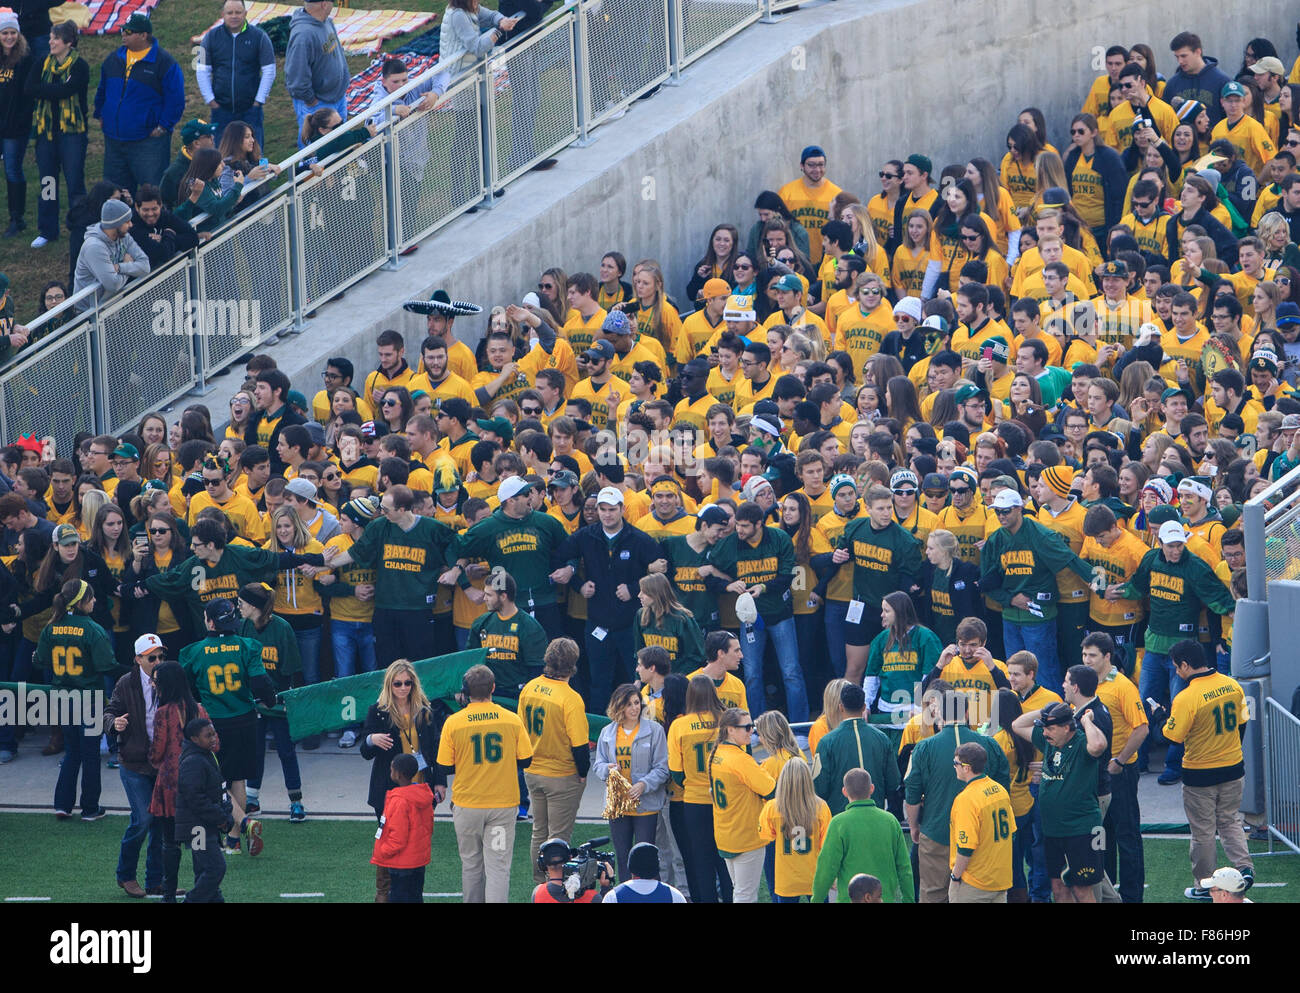 Waco, Texas, USA. 5th Dec, 2015. Baylor Bears Line prepares for run onto the field during the NCAA football game between Texas vs Baylor at McLane Stadium in Waco, Texas. © csm/Alamy Live News Stock Photo